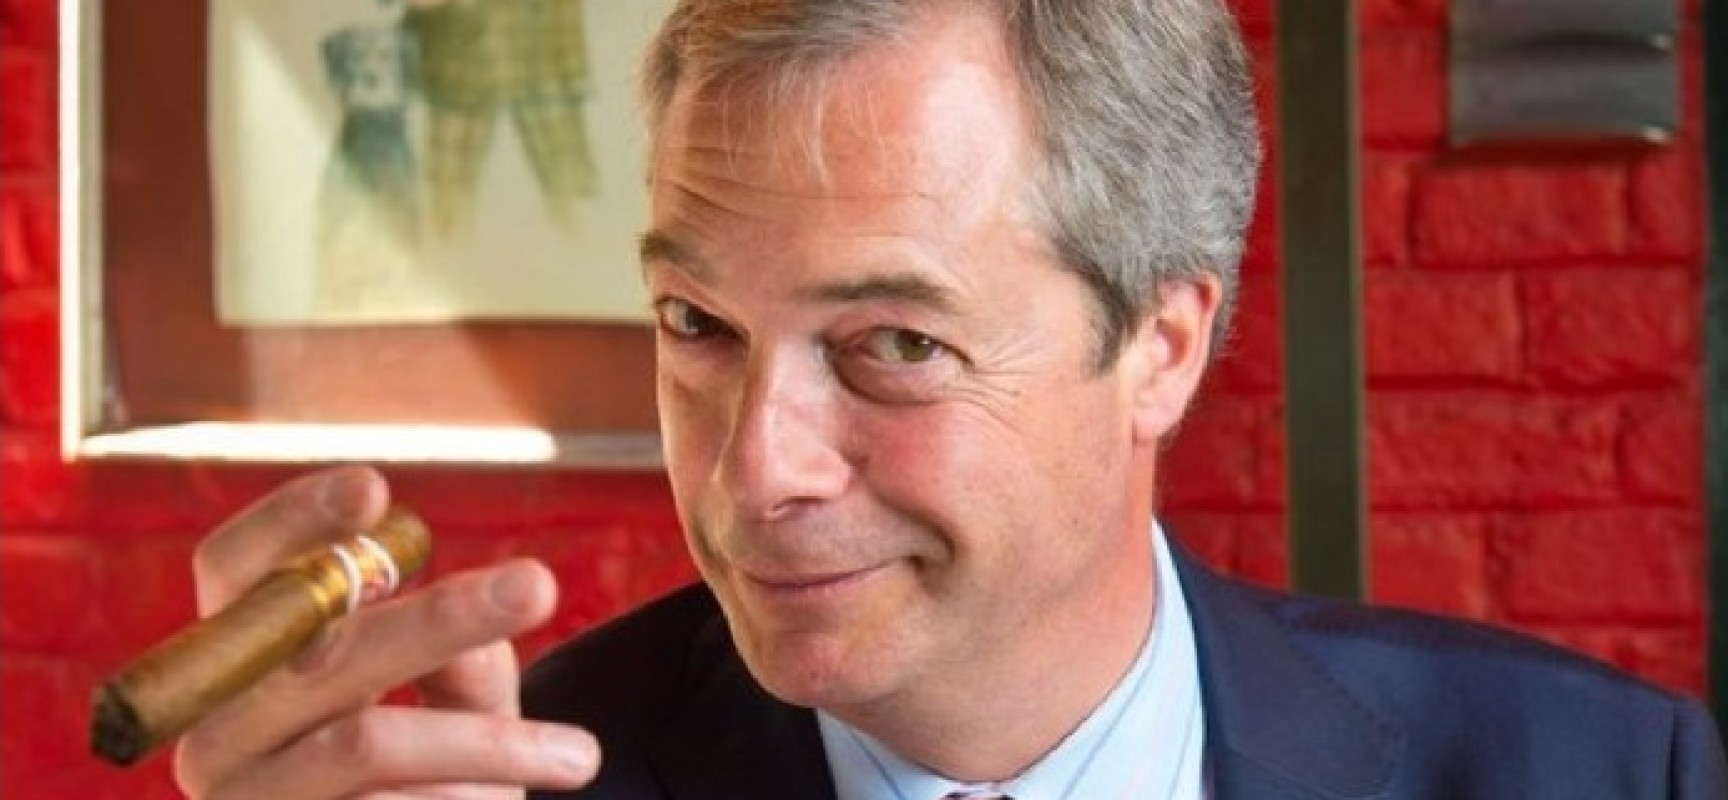 King-World-News-Nigel-Farage-On-Greatest-Danger-Facing-Word-Today-And-Gold-copy-1728x800_c.jpg